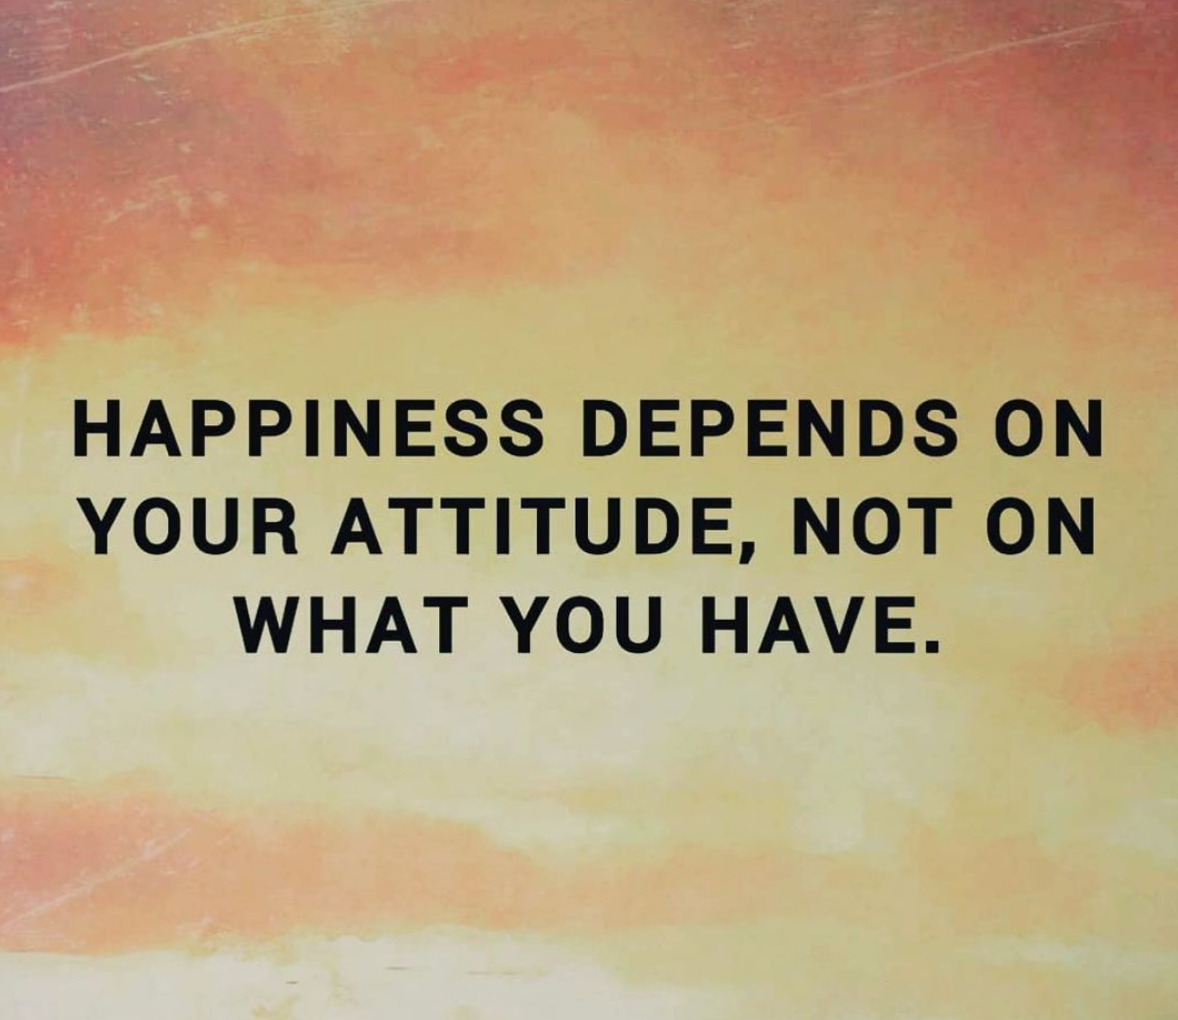 [Image] Happiness depends on your attitude, not on what you have